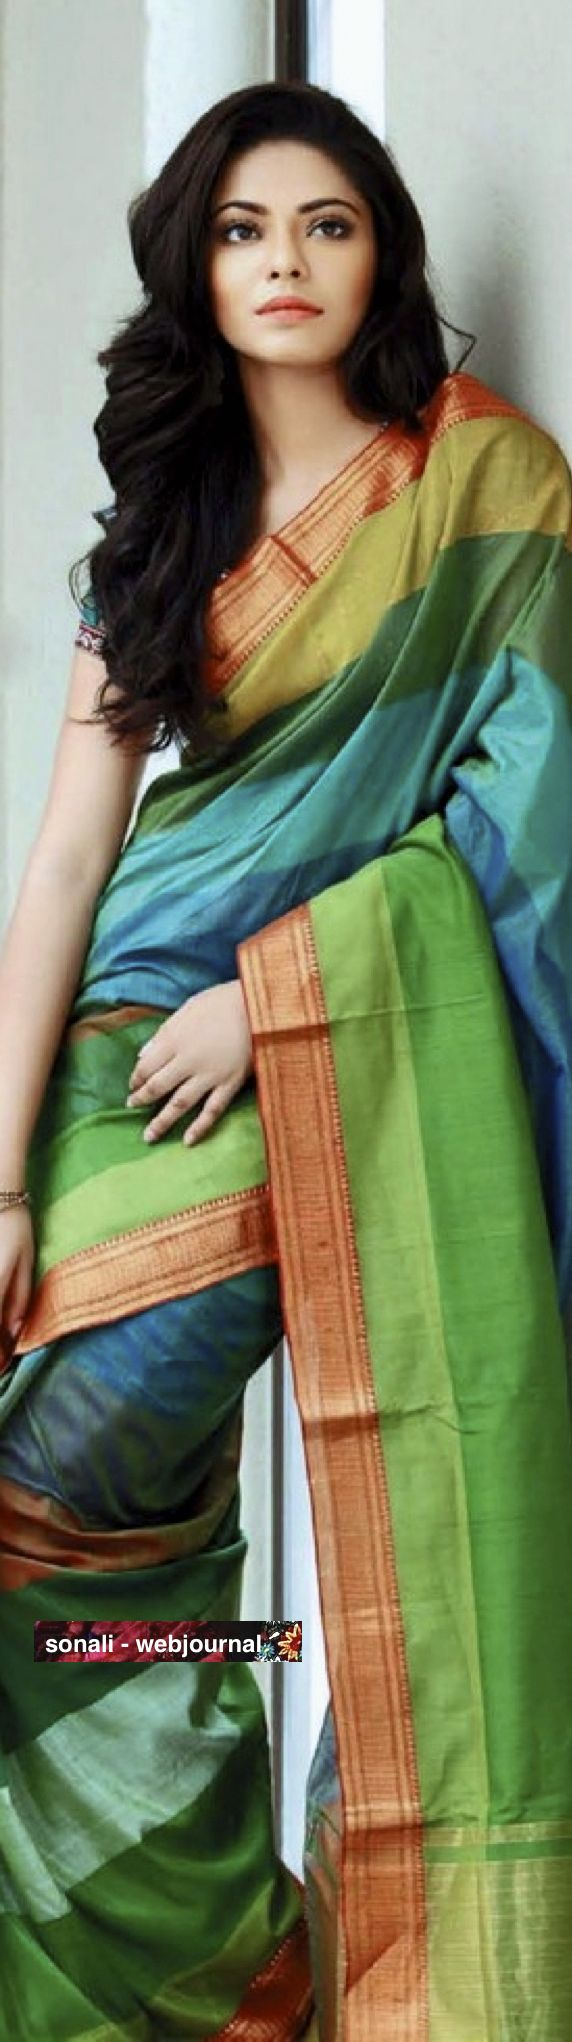 Silk cotton with Mangalgiri border #Bollywood #Fashion #Beauty #saree #sari #blouse #indian #outfit #shaadi #bridal #fashion #style #desi #designer #wedding #gorgeous #beautiful